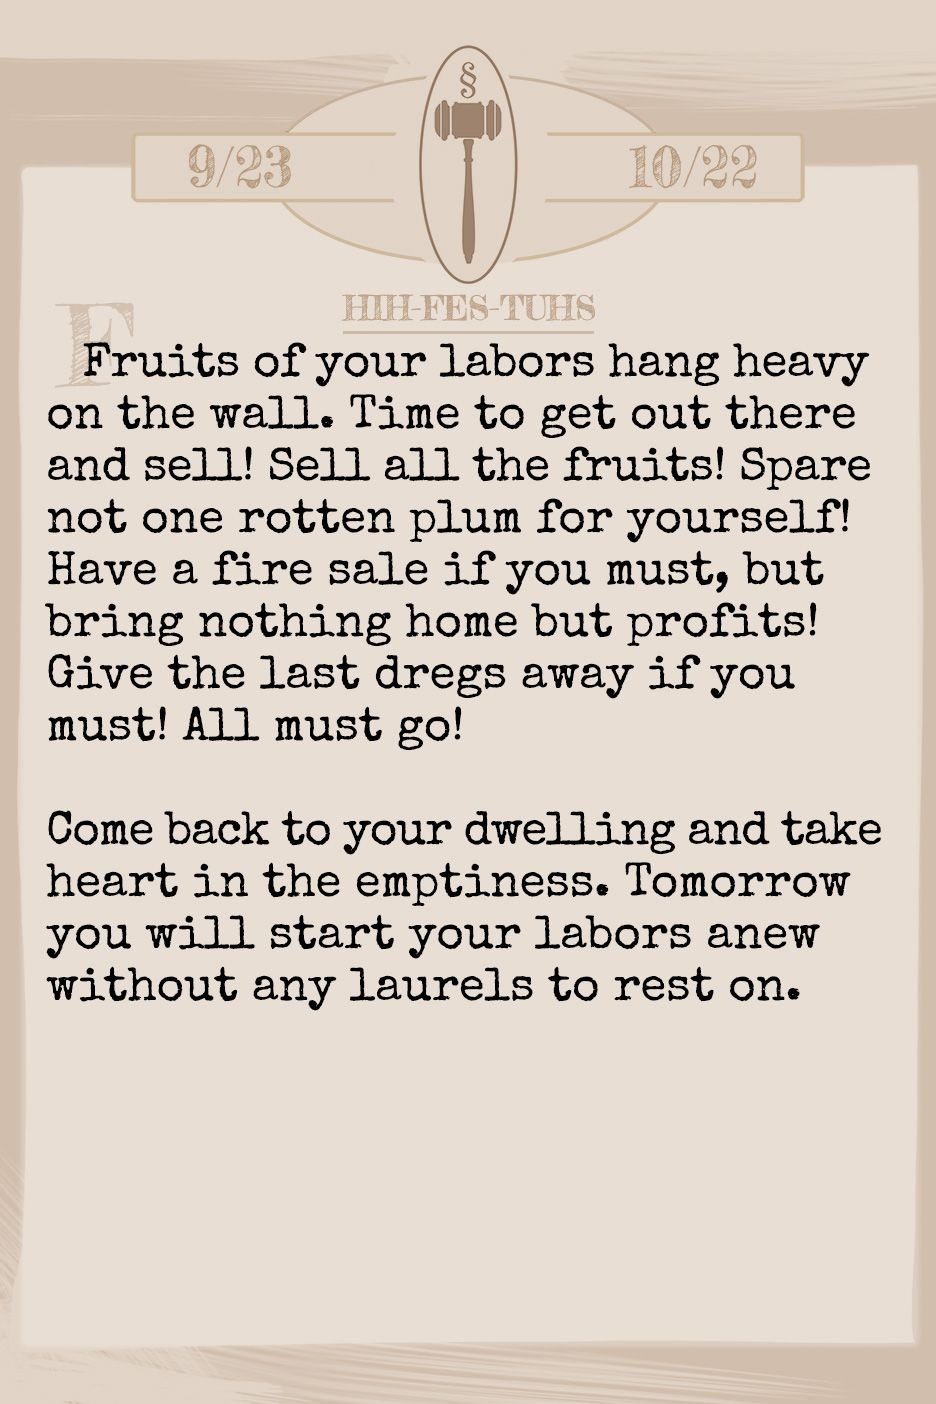 May 2019 Horoscope (Old sign: Libra) Fruits of your labors hang heavy on the wall. Time to get out there and sell! Sell all the fruits! Spare not one rotten plum for yourself! Have a fire sale if you must, but bring nothing home but profits! Give the last dregs away if you must! All must go! Come back to your dwelling and take heart in the emptiness. Tomorrow you will start your labors anew without any laurels to rest on.